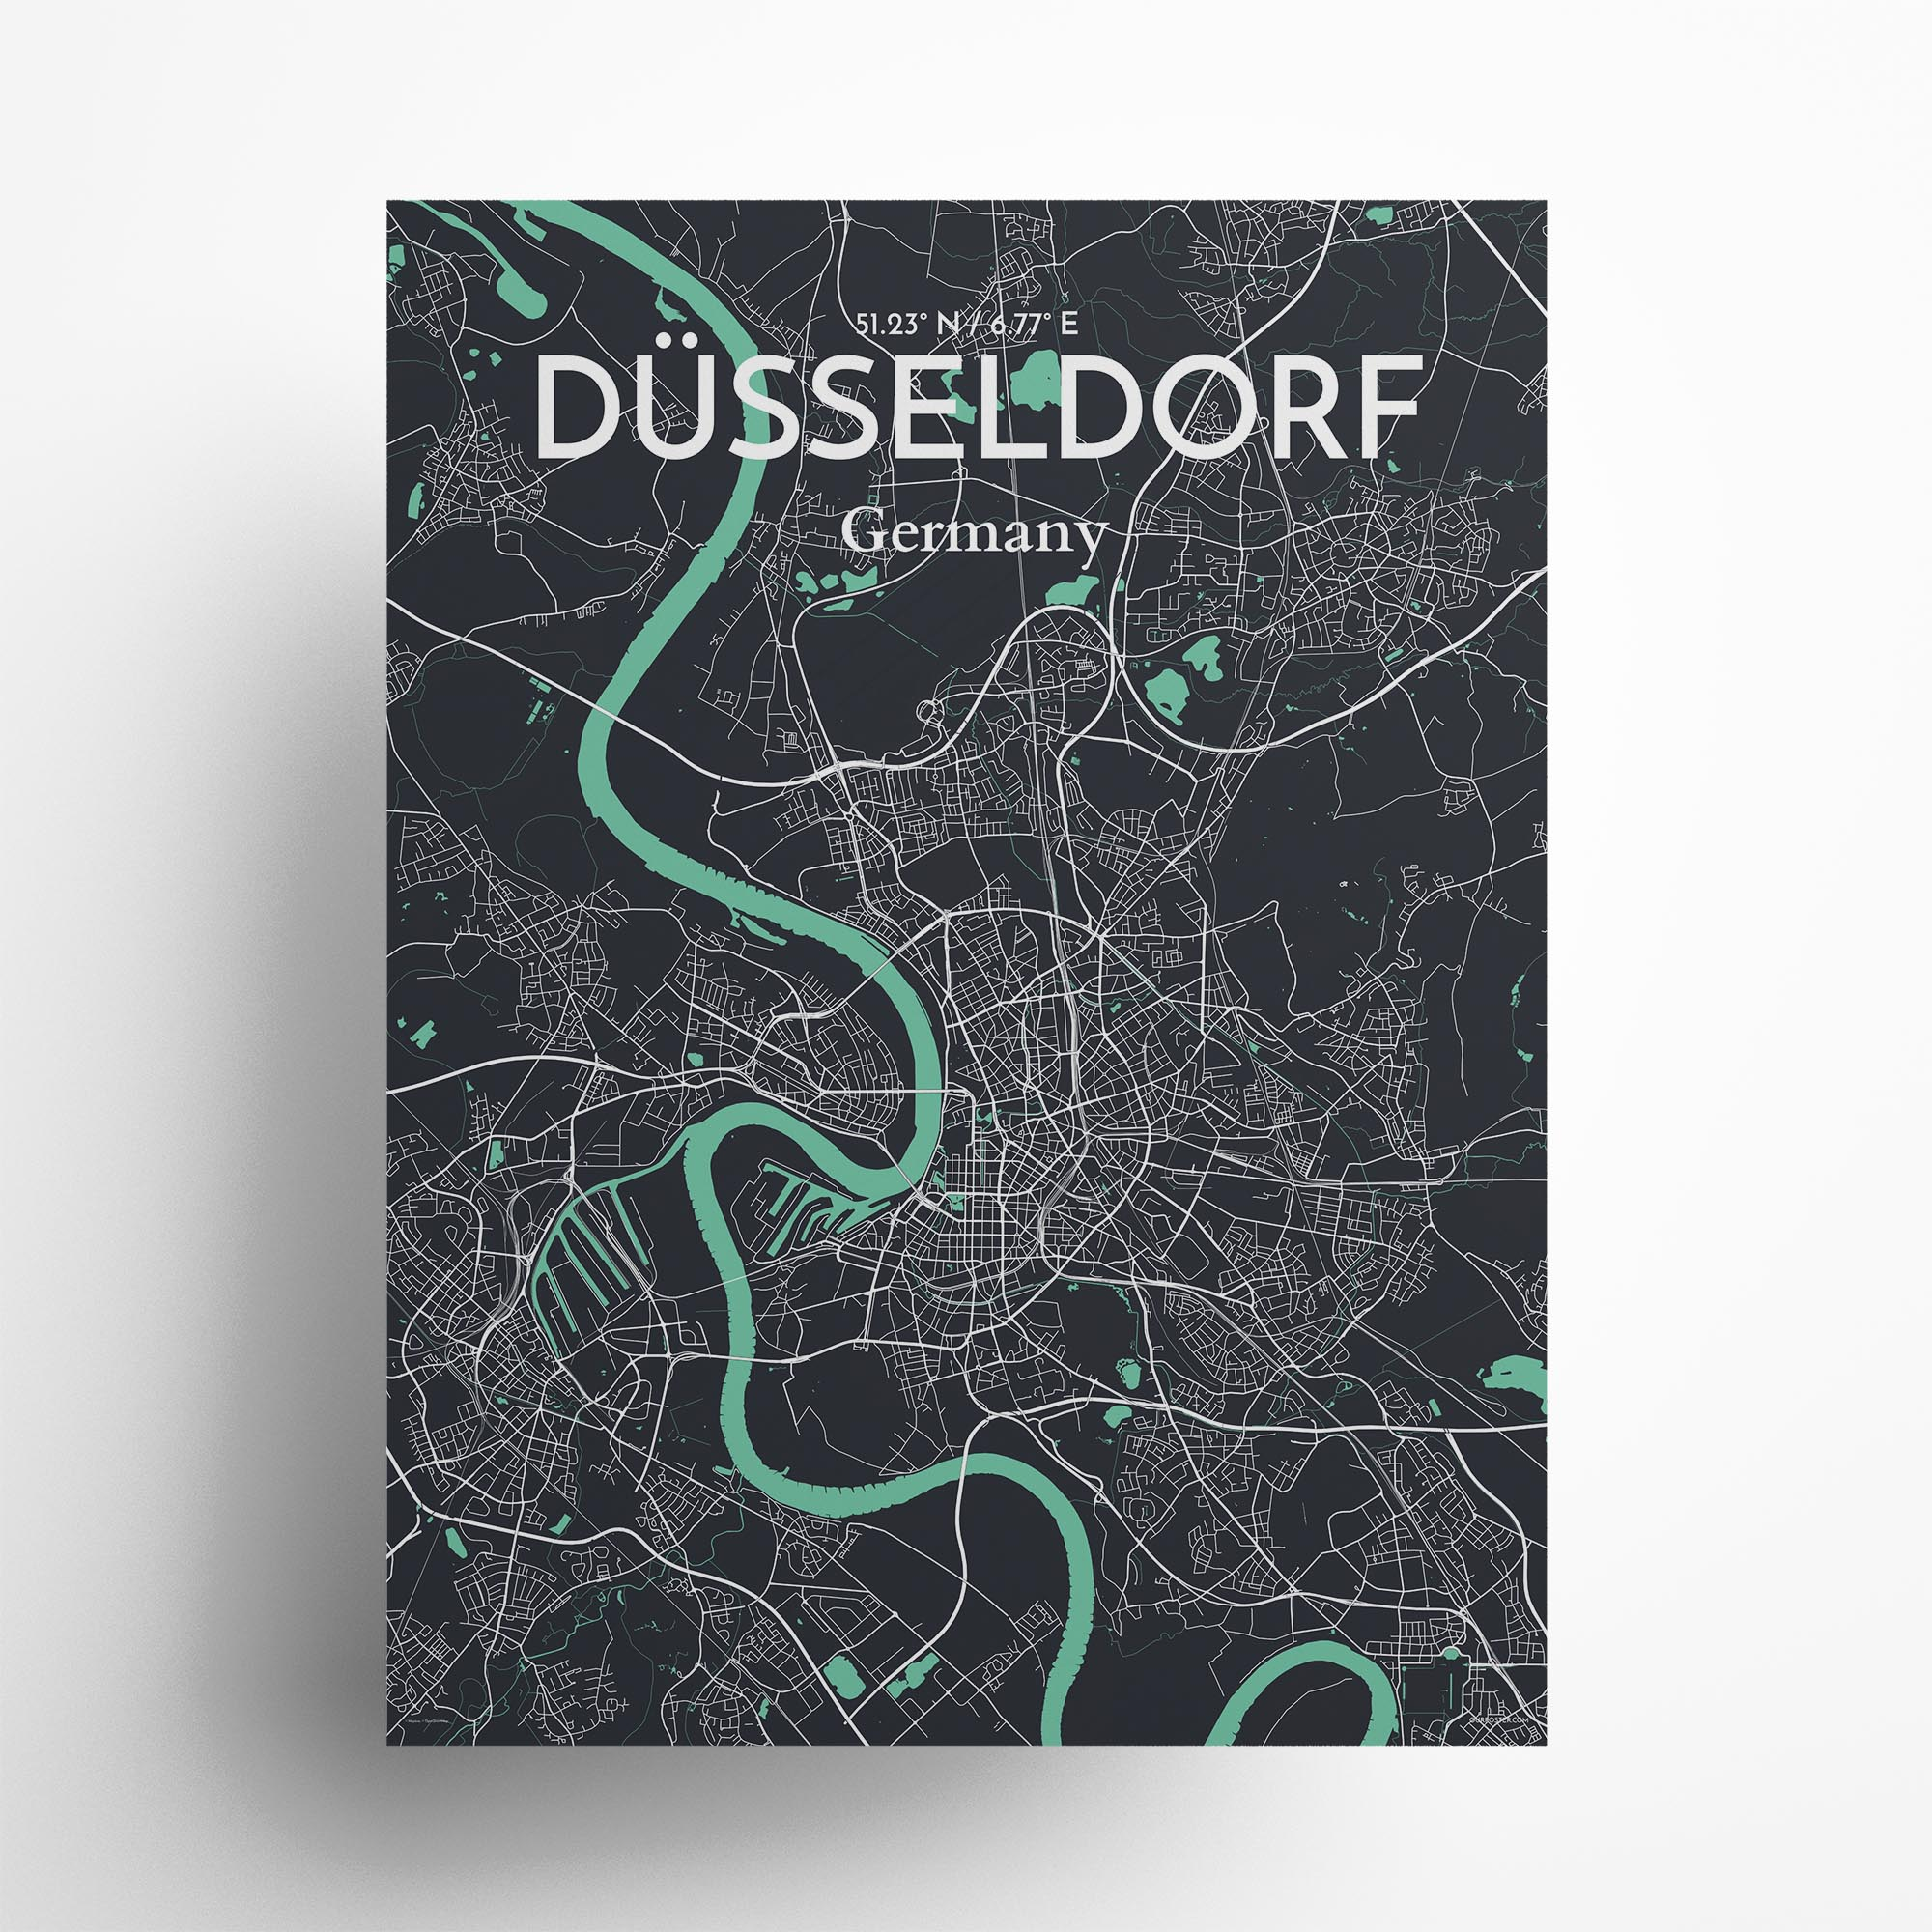 "Dusseldorf city map poster in Dream of size 18"" x 24"""